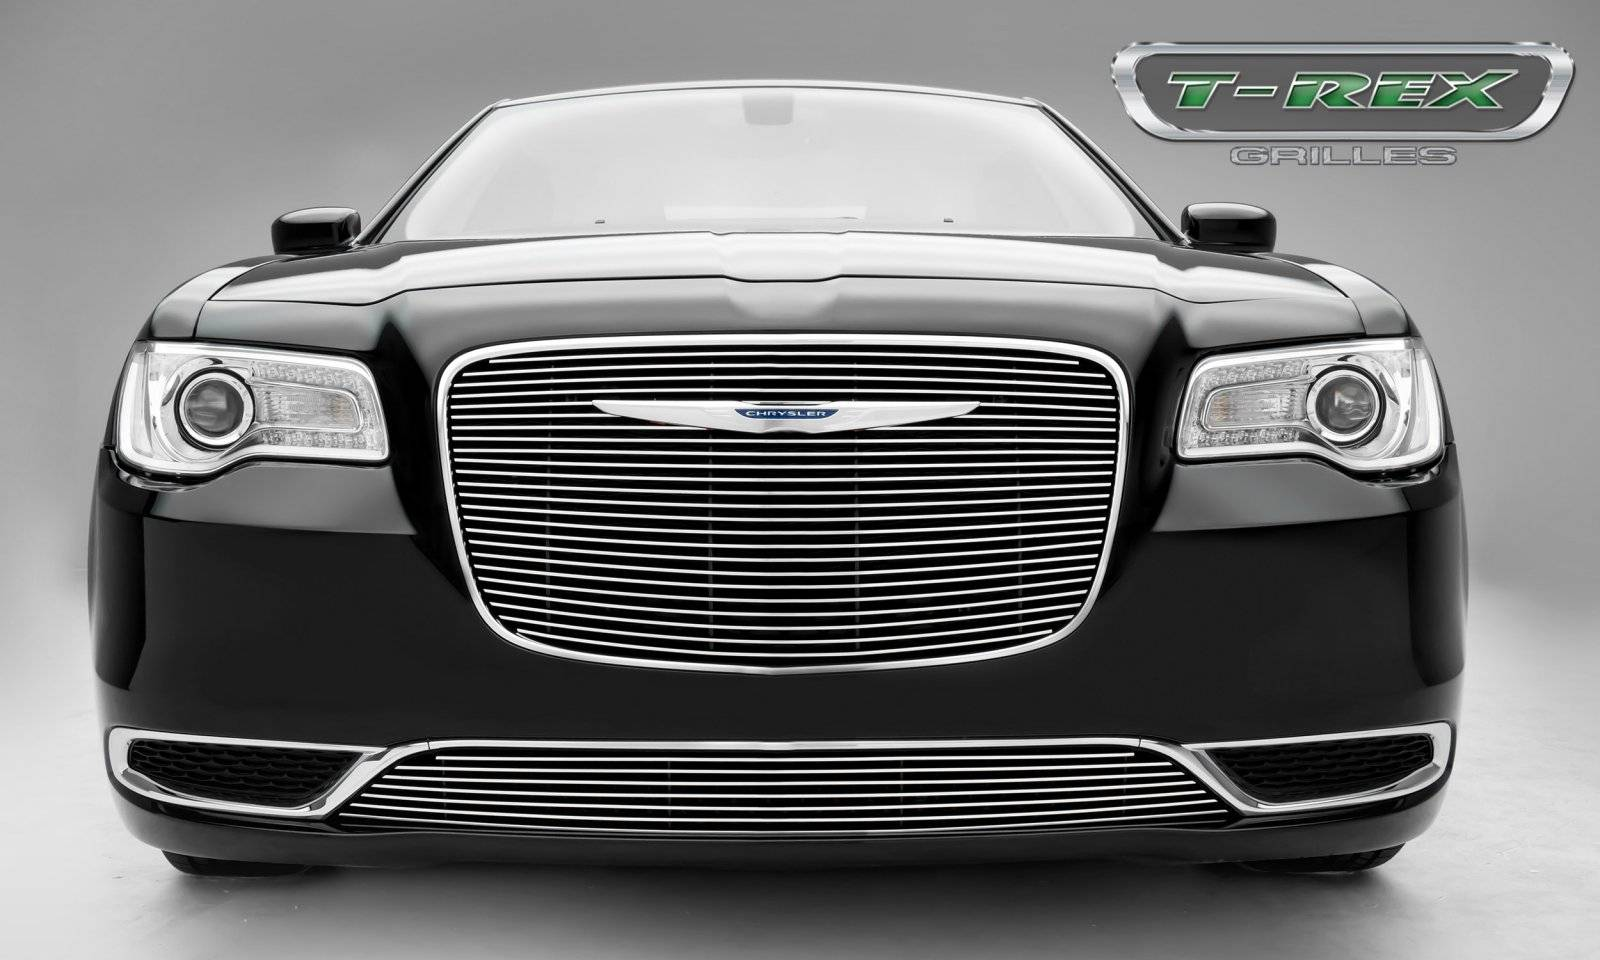 T-REX Grilles - Chrysler 300 - Billet Series - Main Grille Overlay with Black Powder Coat Aluminum Bars and Polished Face - Pt # 21436